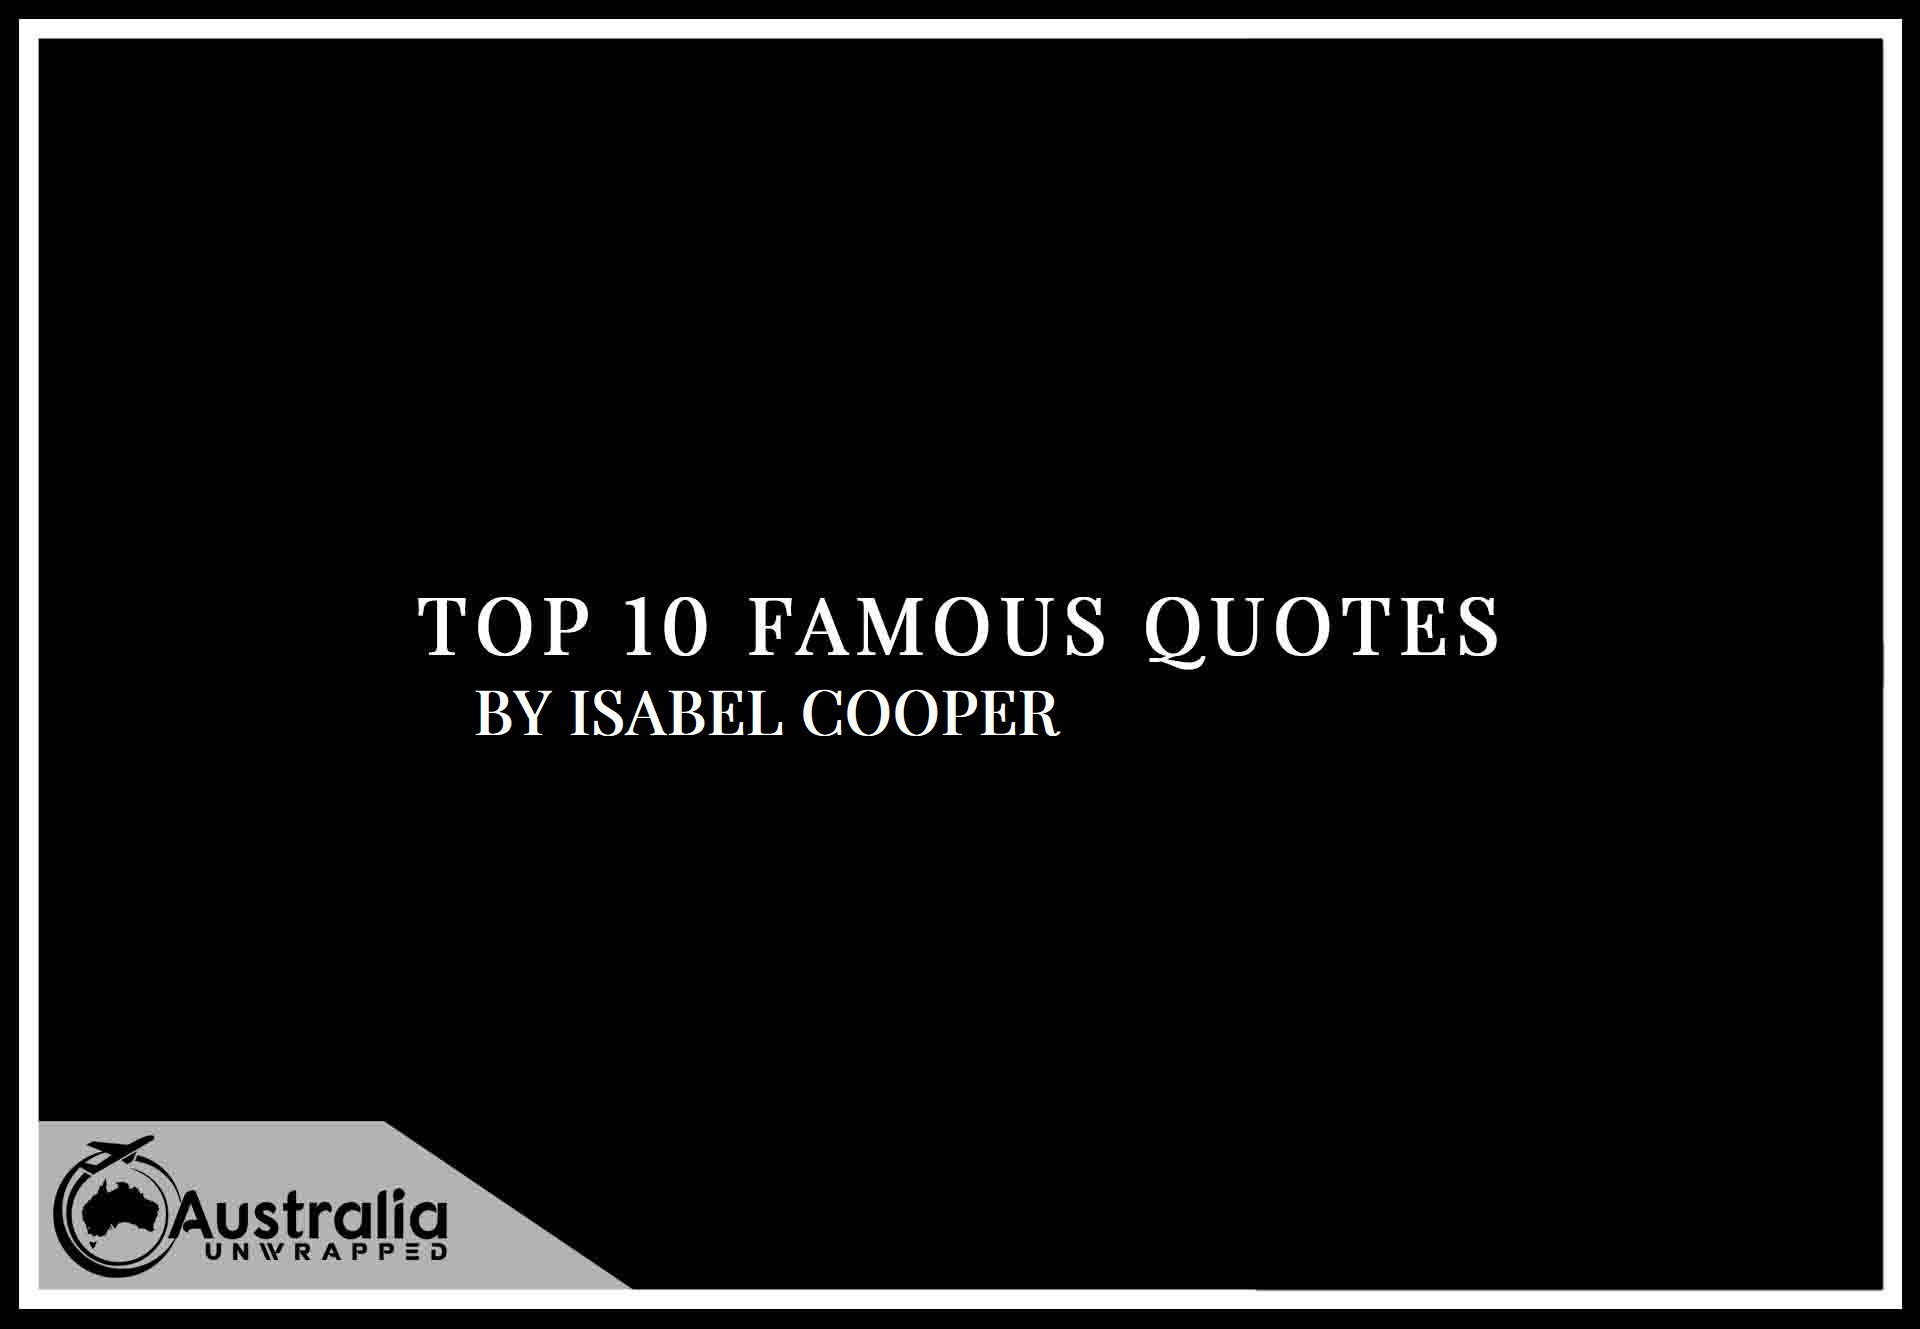 Top 10 Famous Quotes by Author Isabel Cooper